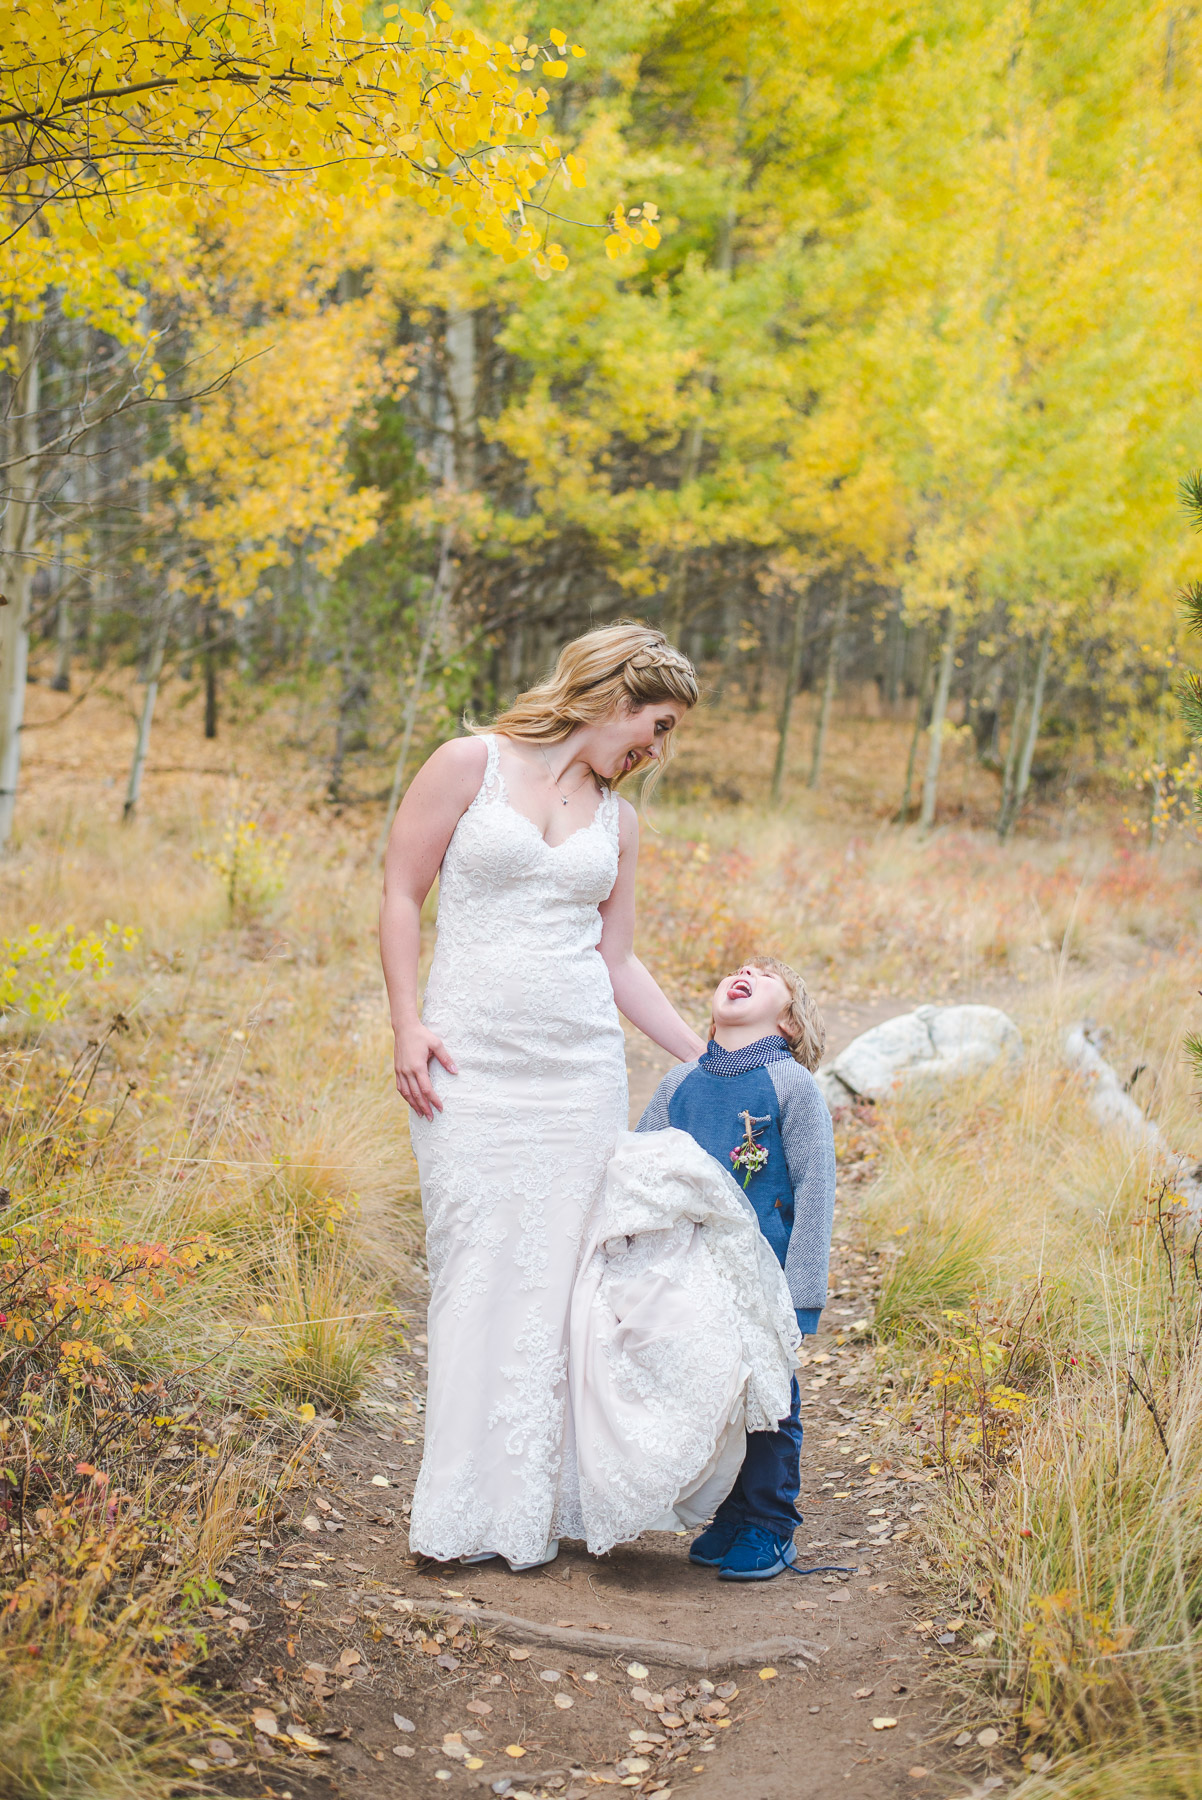 Mom bride and older brother take portraits together |Autumn elopement in Breckenridge, Colorado | Summit Mountain Weddings